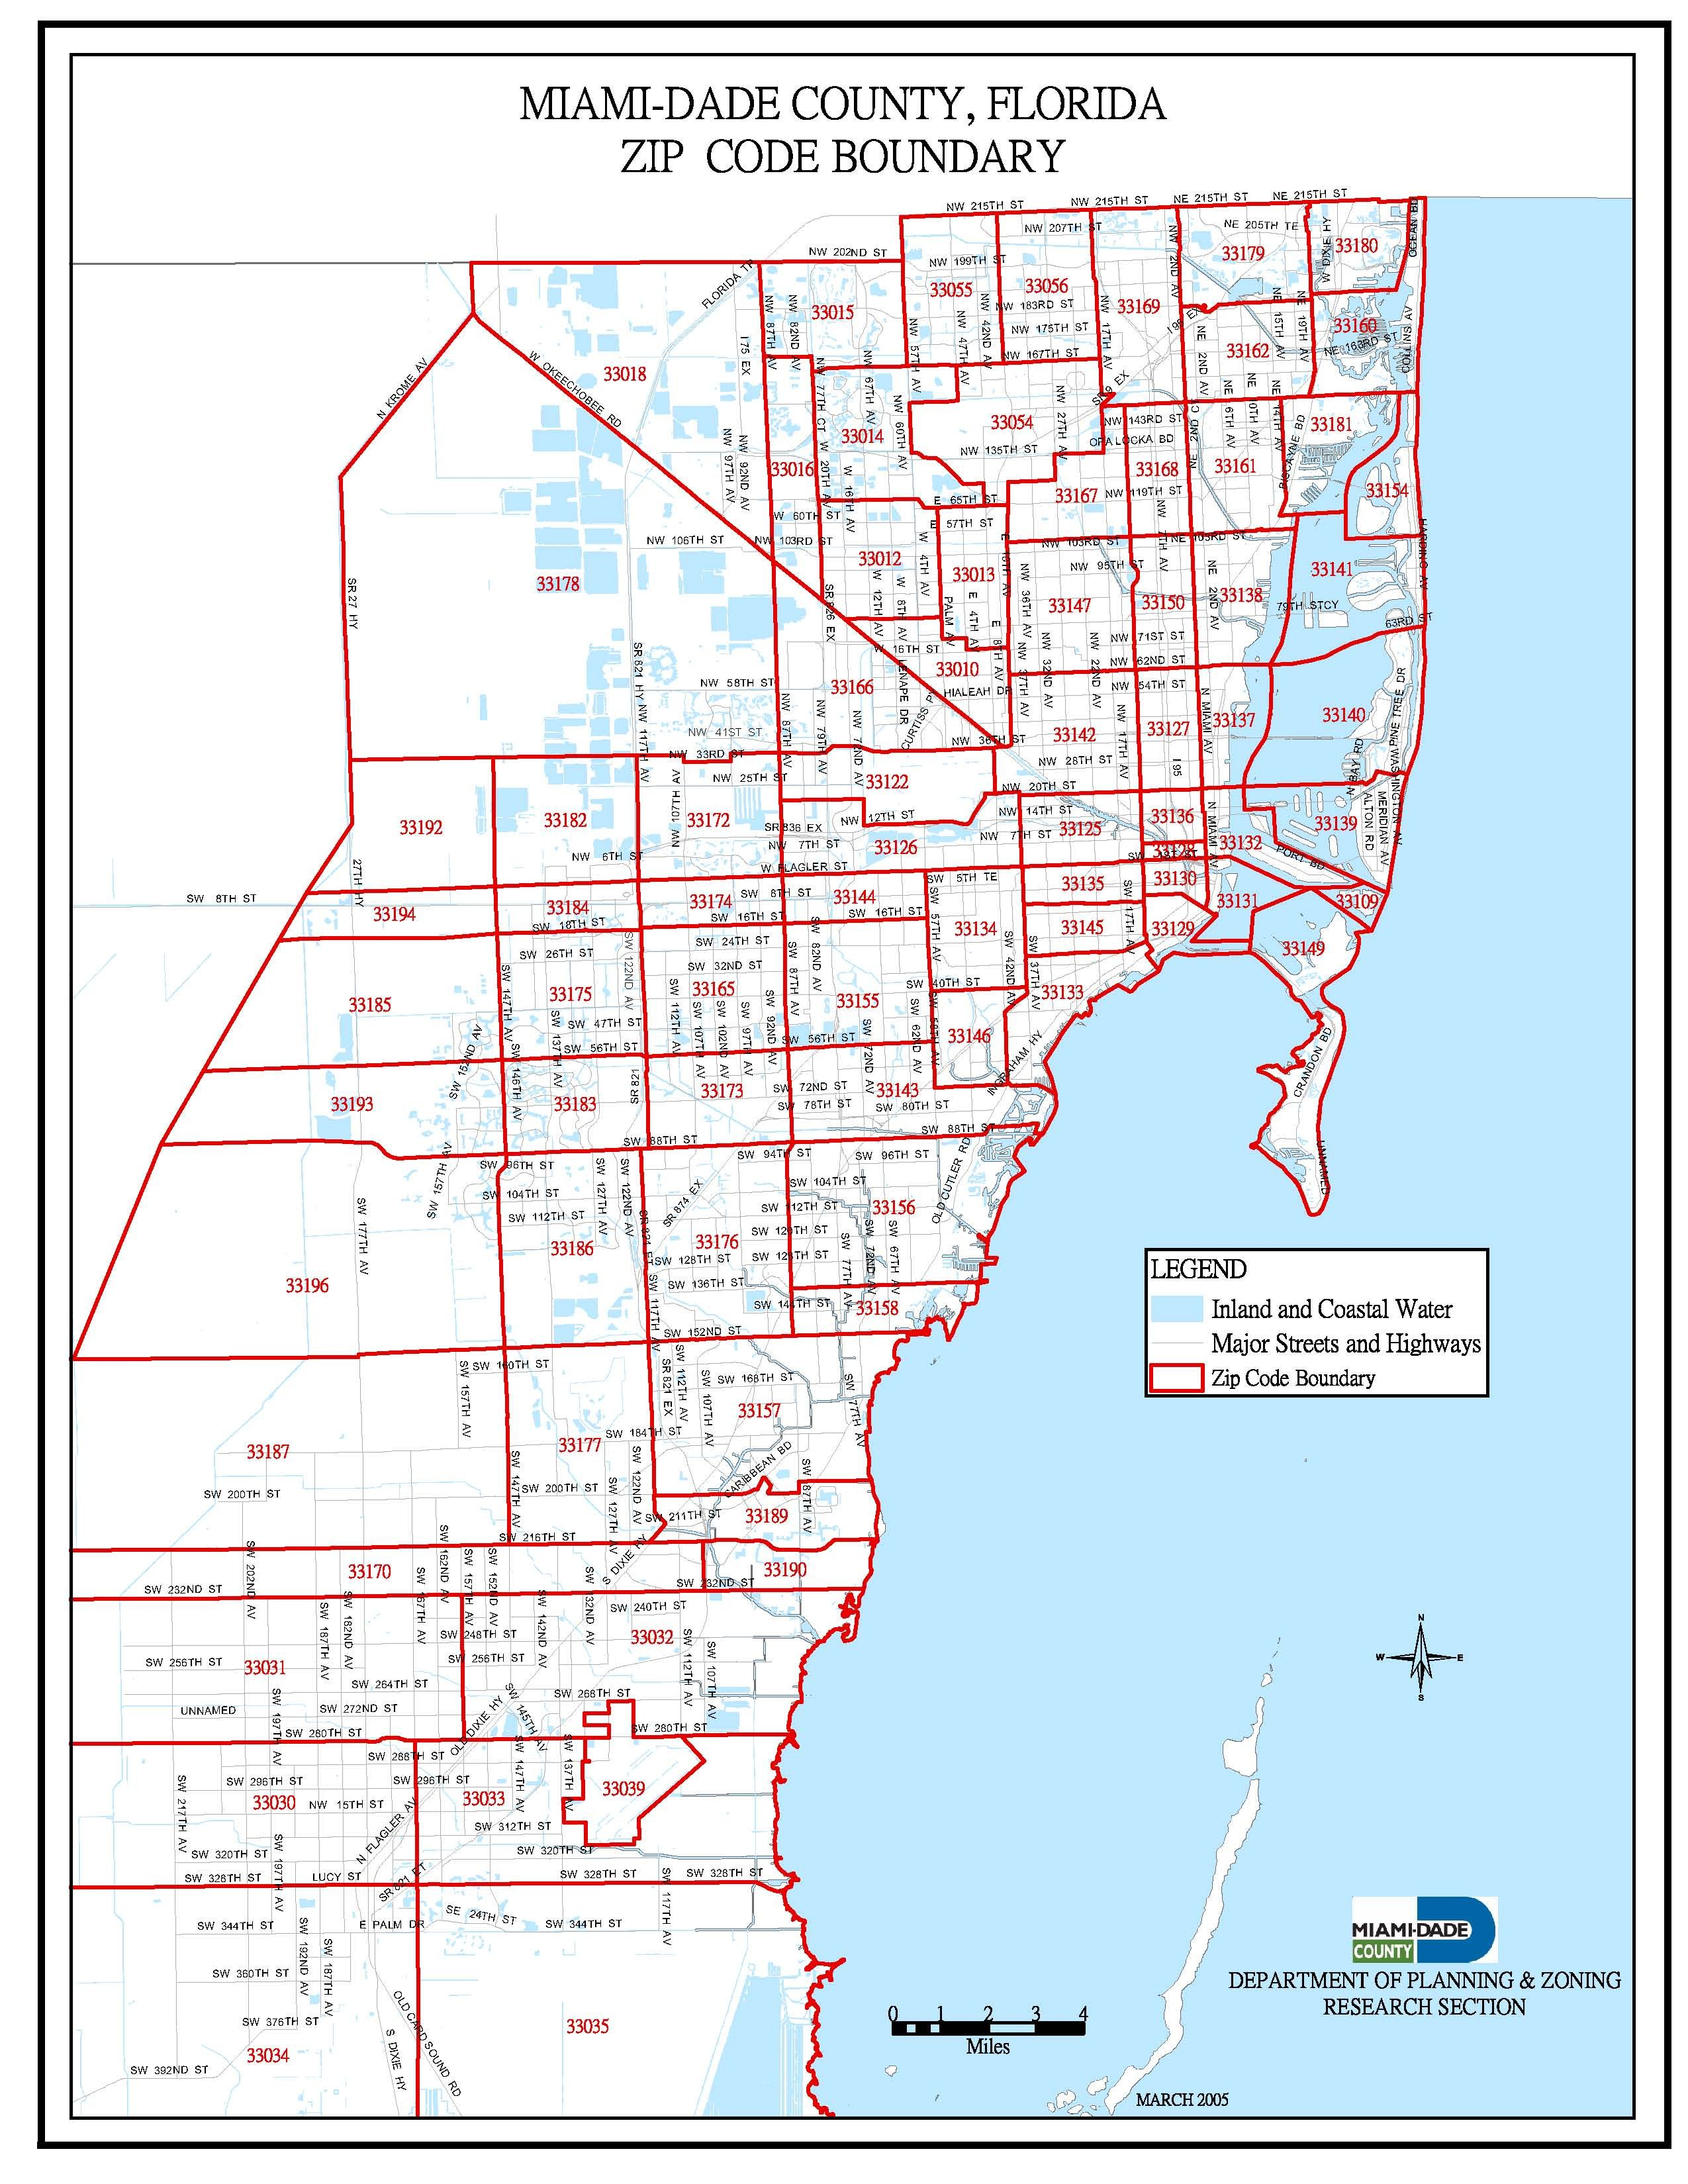 Miami Dade County Zip Code Map Miami Dade Zip Code Map | Zip code map, South florida real estate